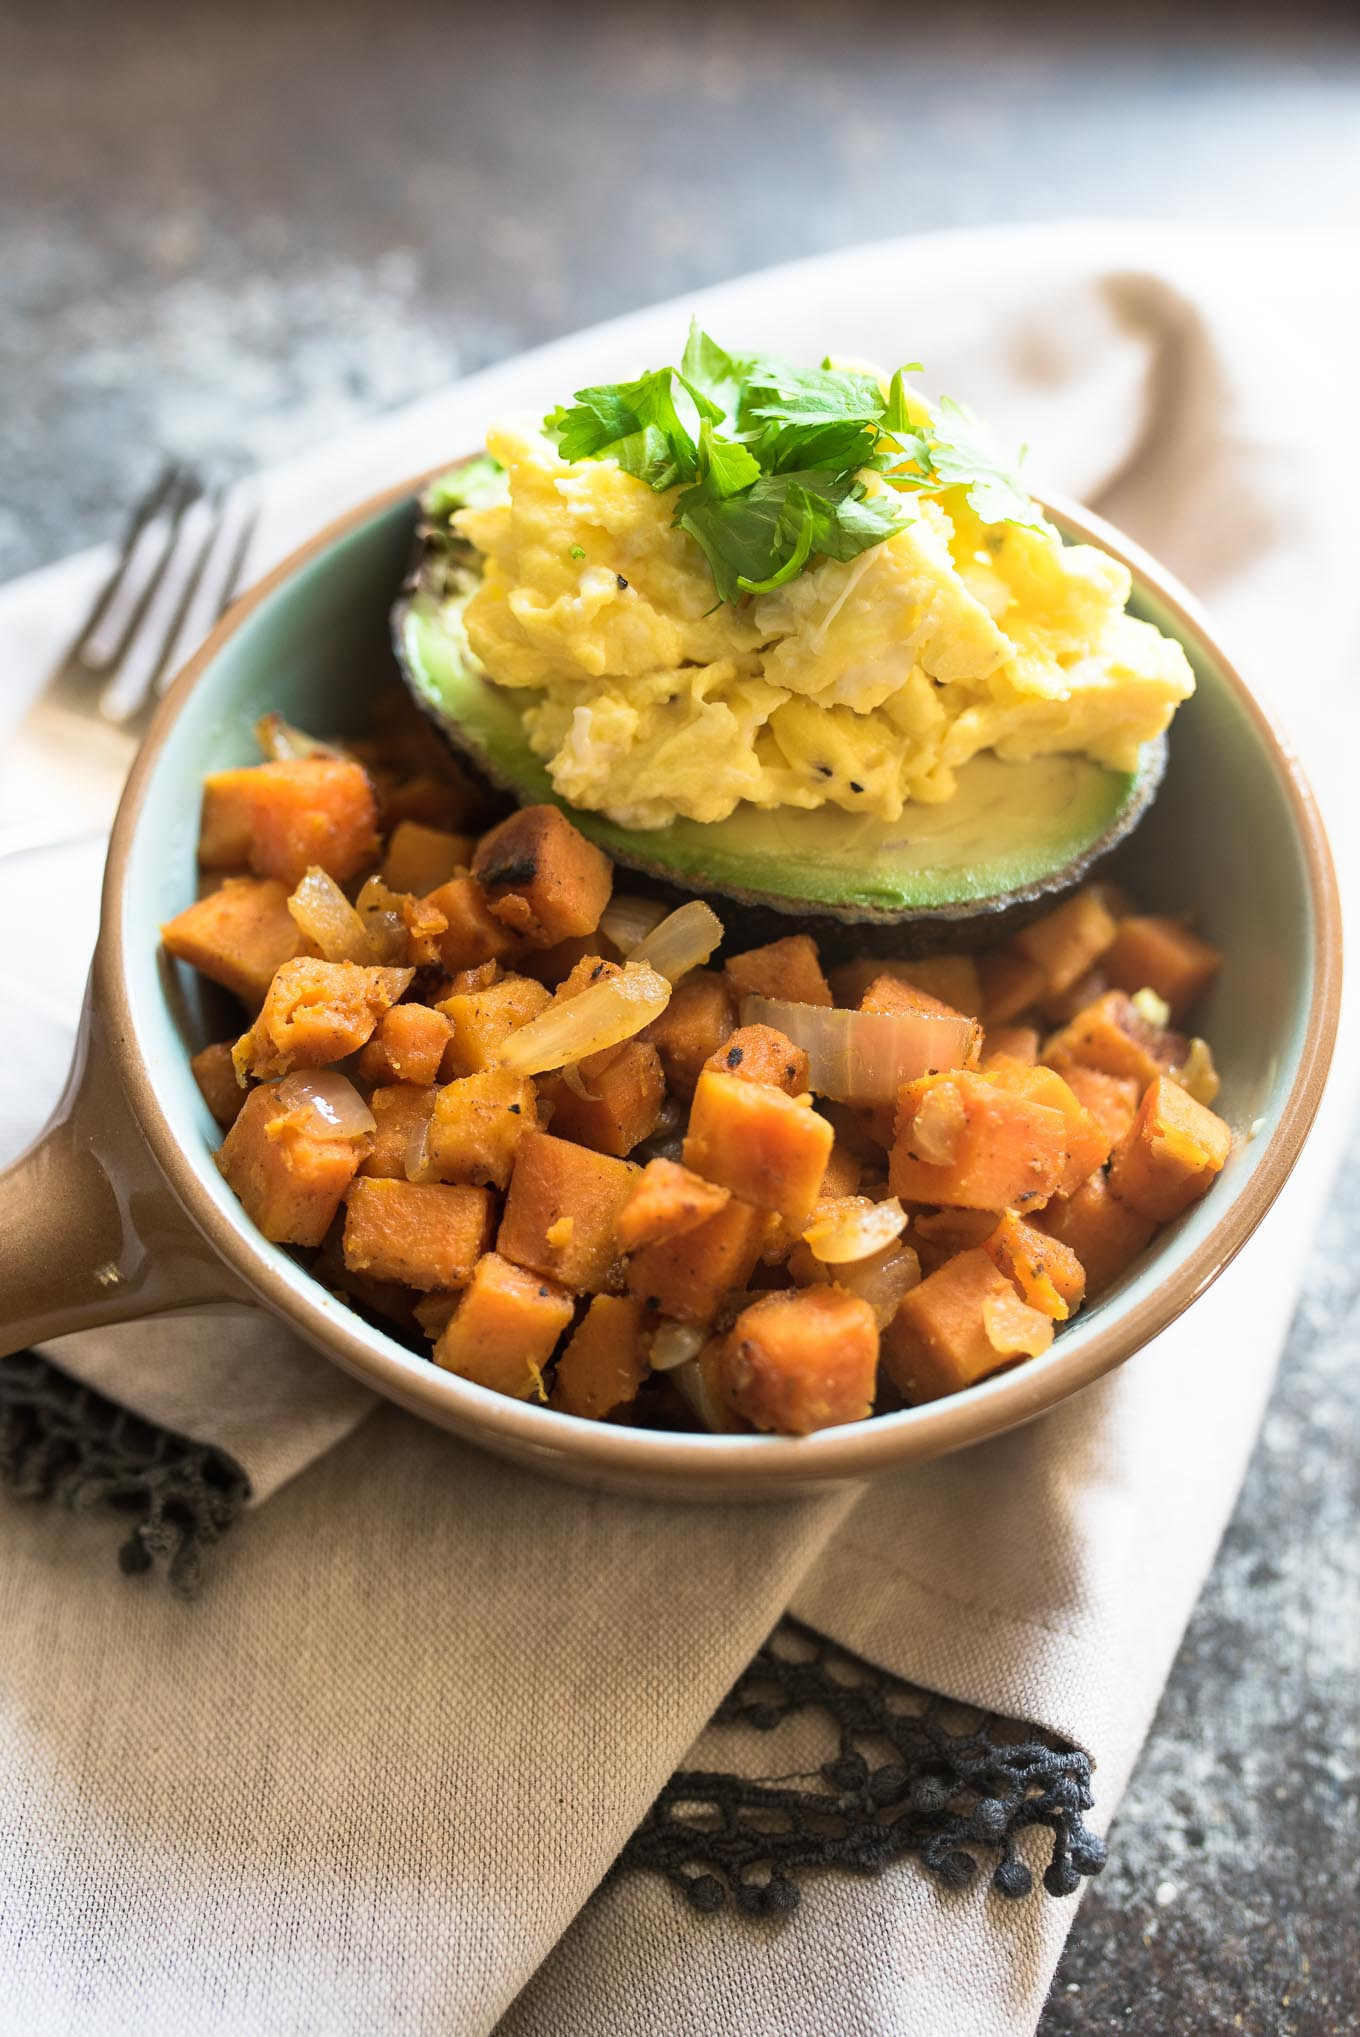 Spiced Sweet Potato Hash with Avocado and Eggs is naturally gluten free, high in fiber and protein and is a budget friendly meal that will nourish you inside and out!